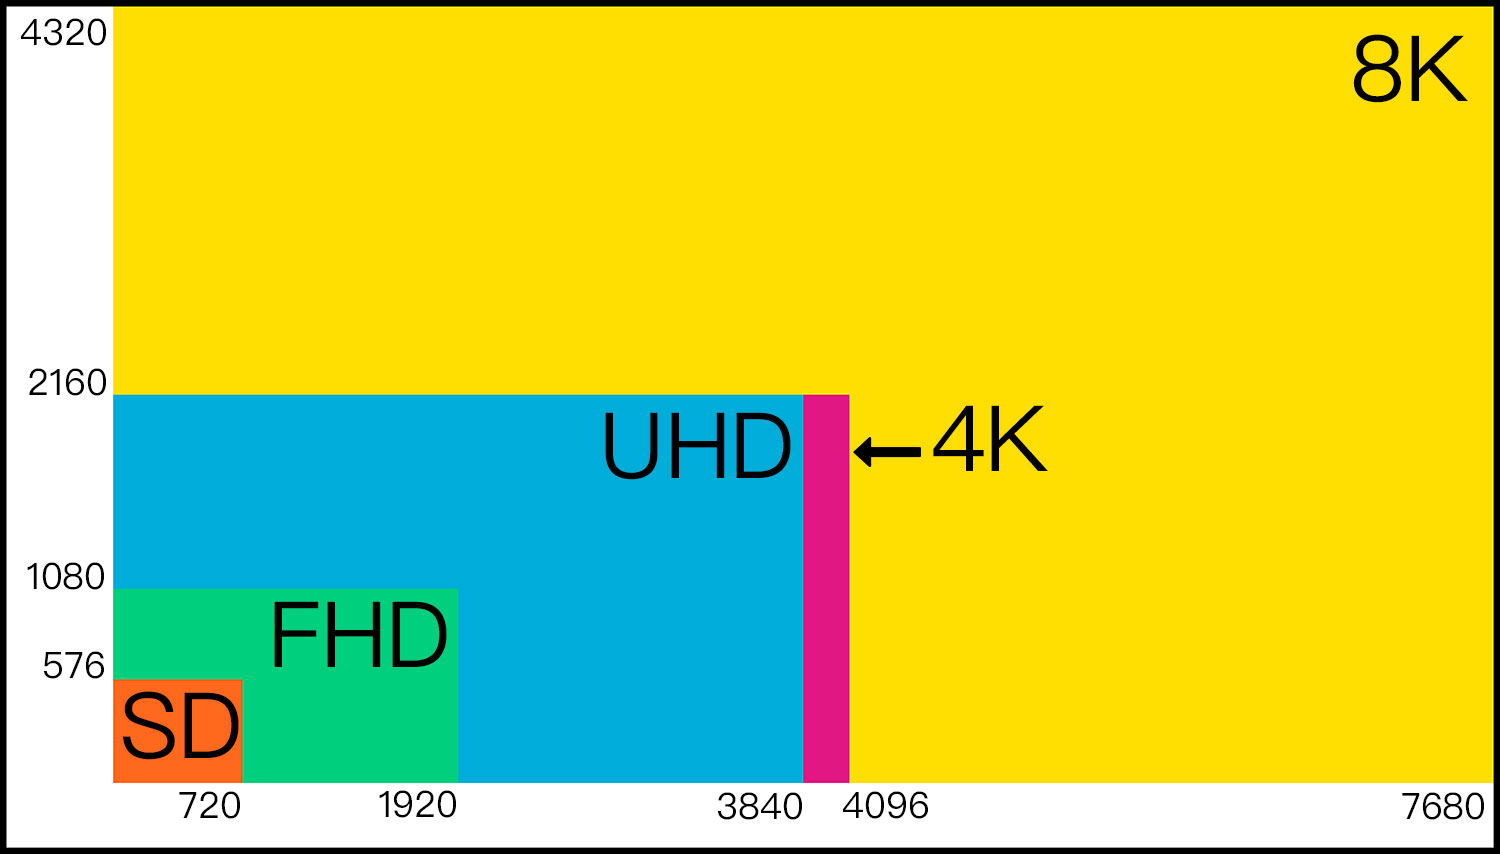 What's the Difference Between Ultra HD (UHD) & 4K (DCI